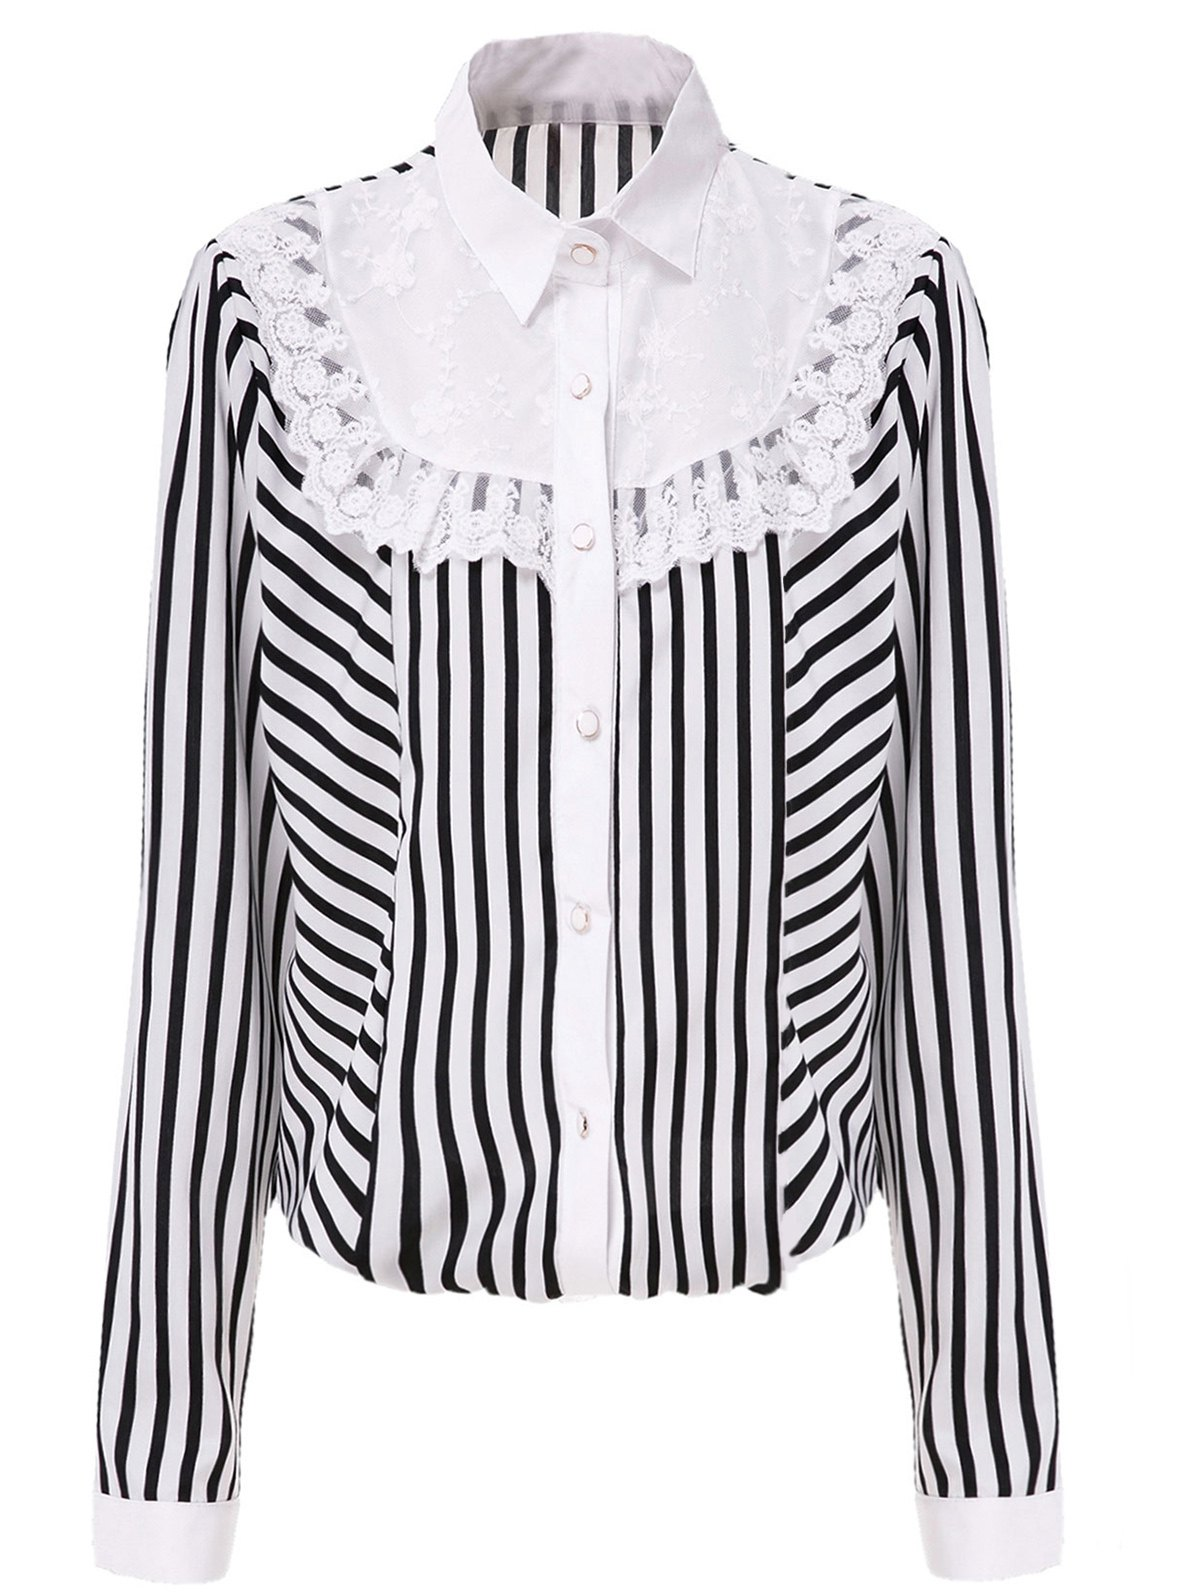 Chic Shirt Collar Long Sleeve Striped Lace Design Women's Shirt - WHITE/BLACK M